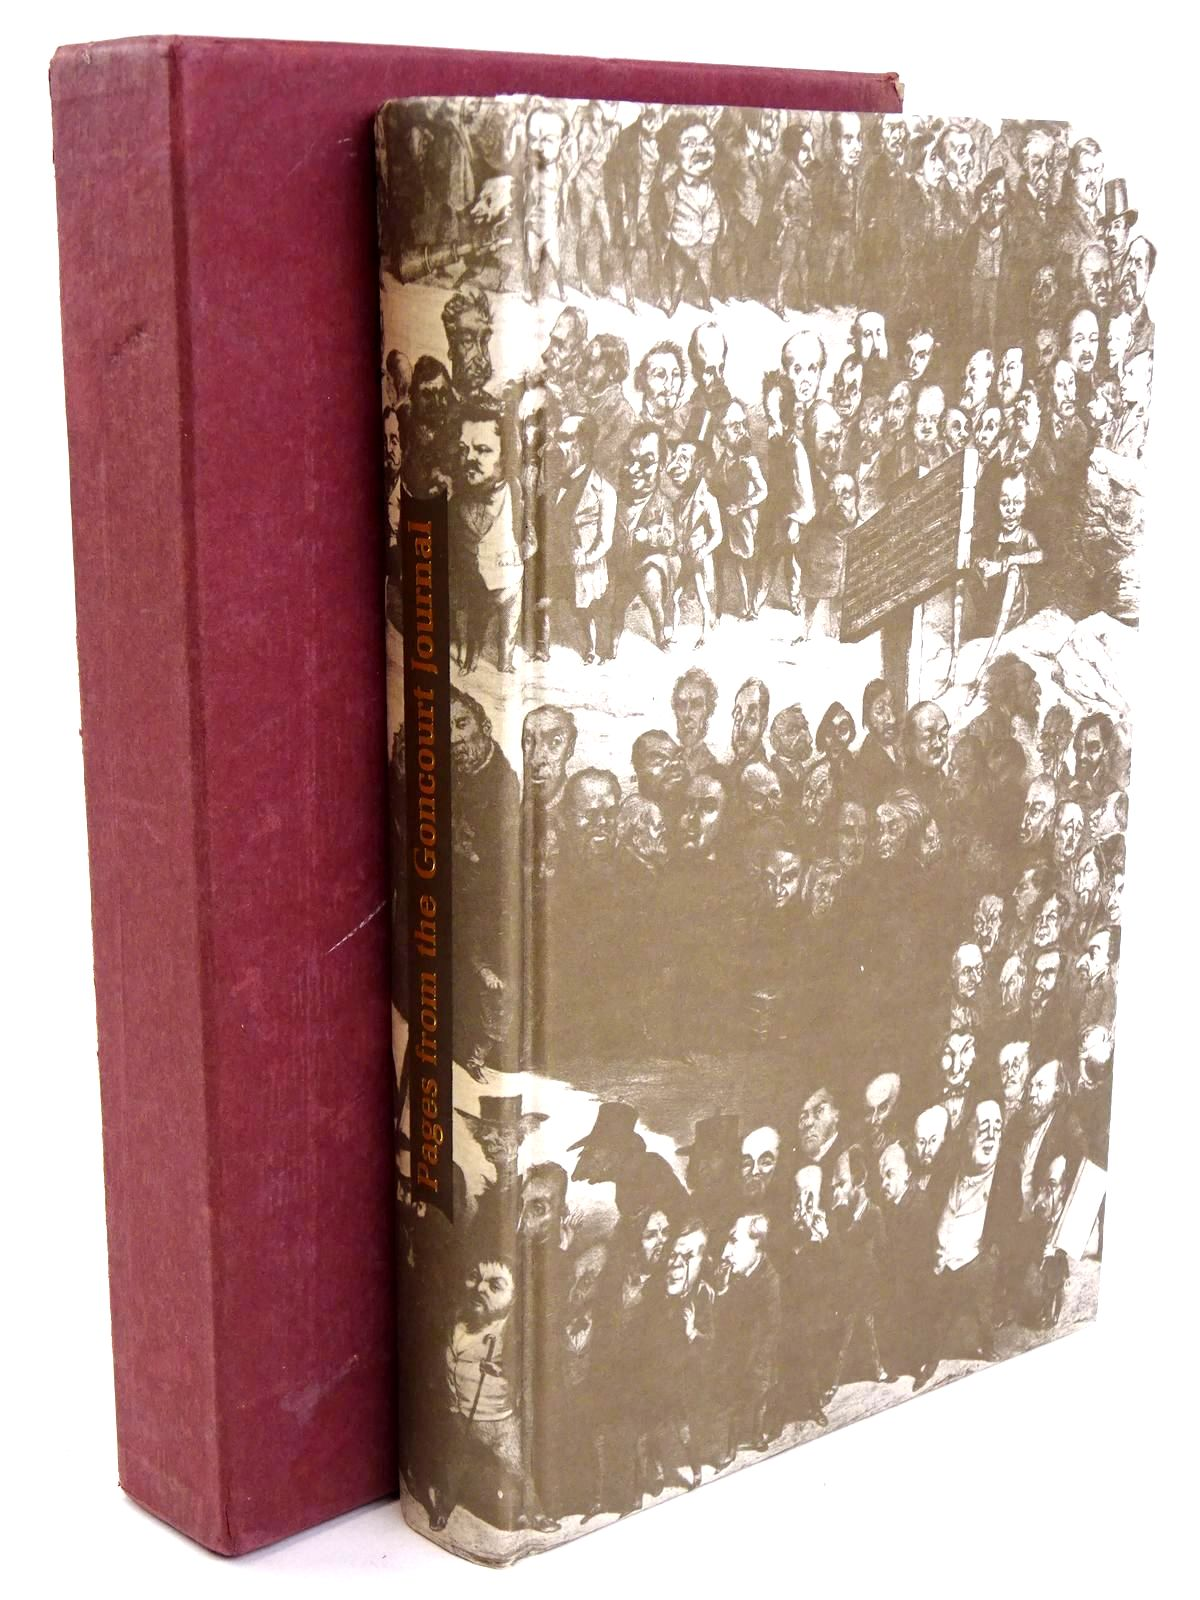 Photo of PAGES FROM THE GONCOURT JOURNAL written by Baldick, Robert<br />De Goncourt, Edmond<br />De Goncourt, Jules published by Folio Society (STOCK CODE: 1318479)  for sale by Stella & Rose's Books